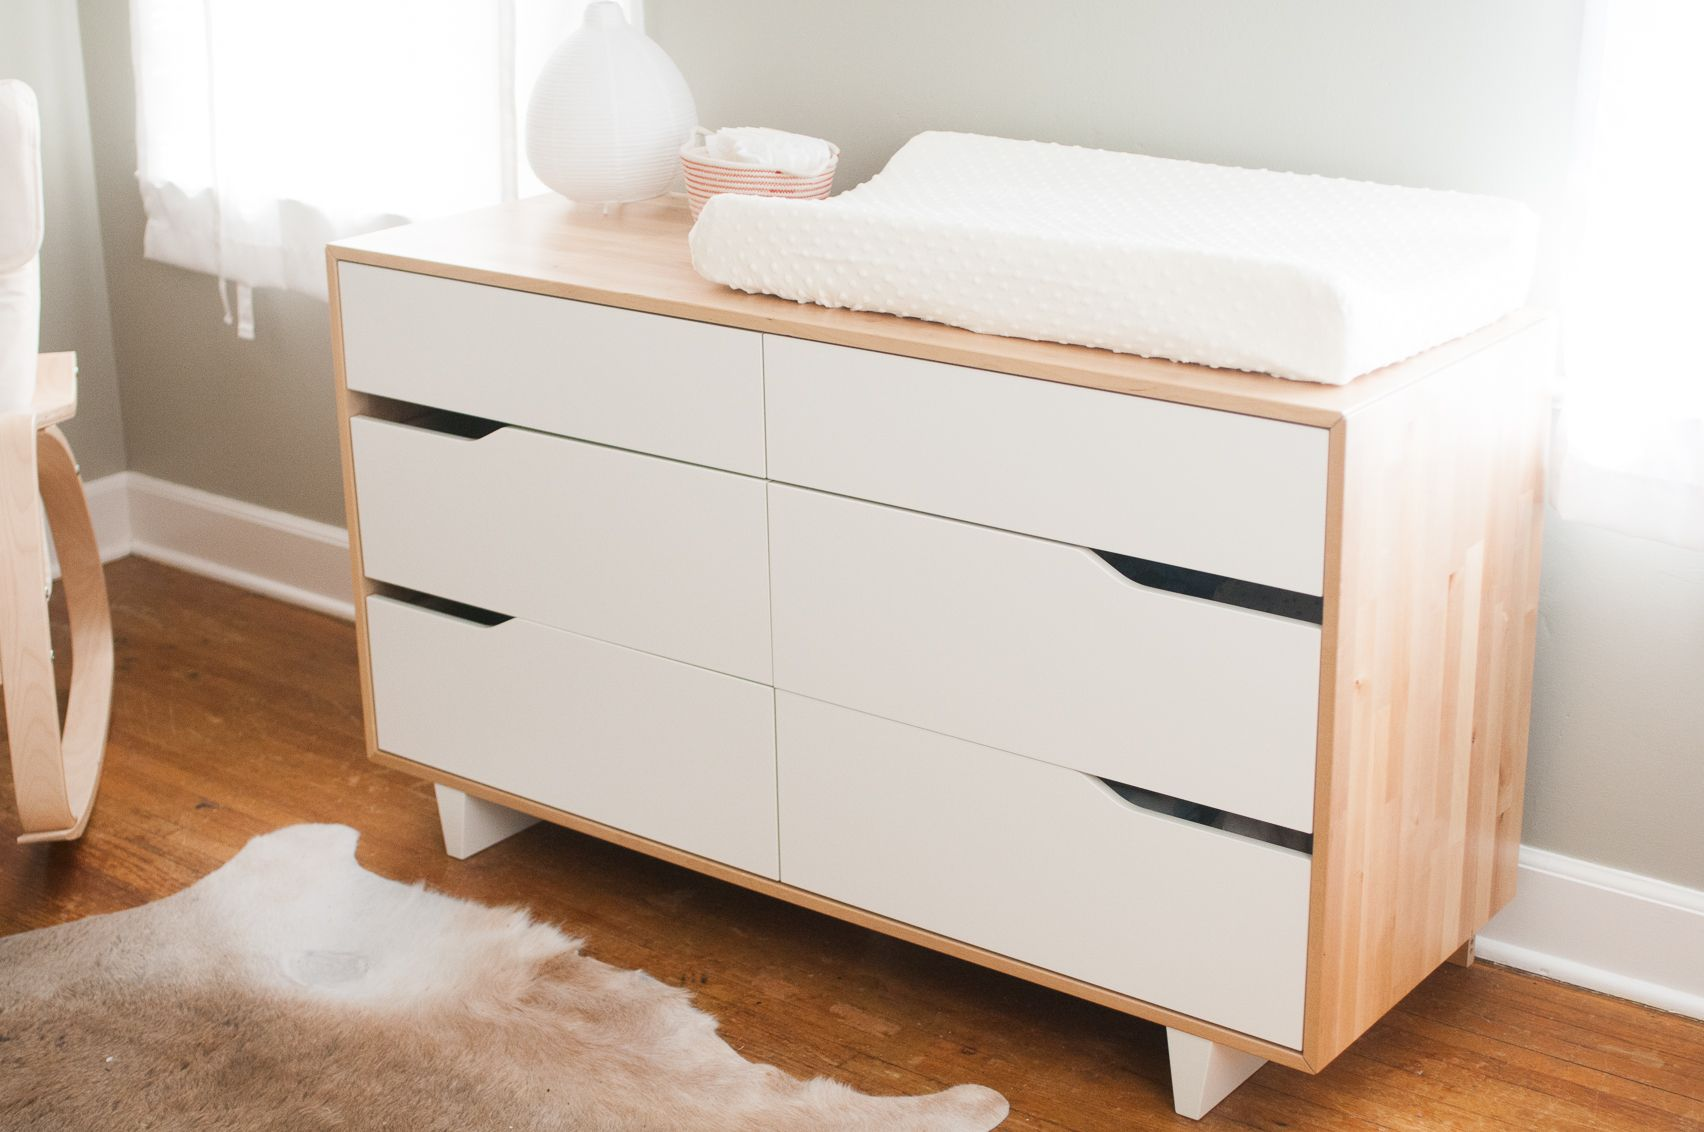 Perfect Ikea Mandal Dresser (w/ Changing Pad On Top)